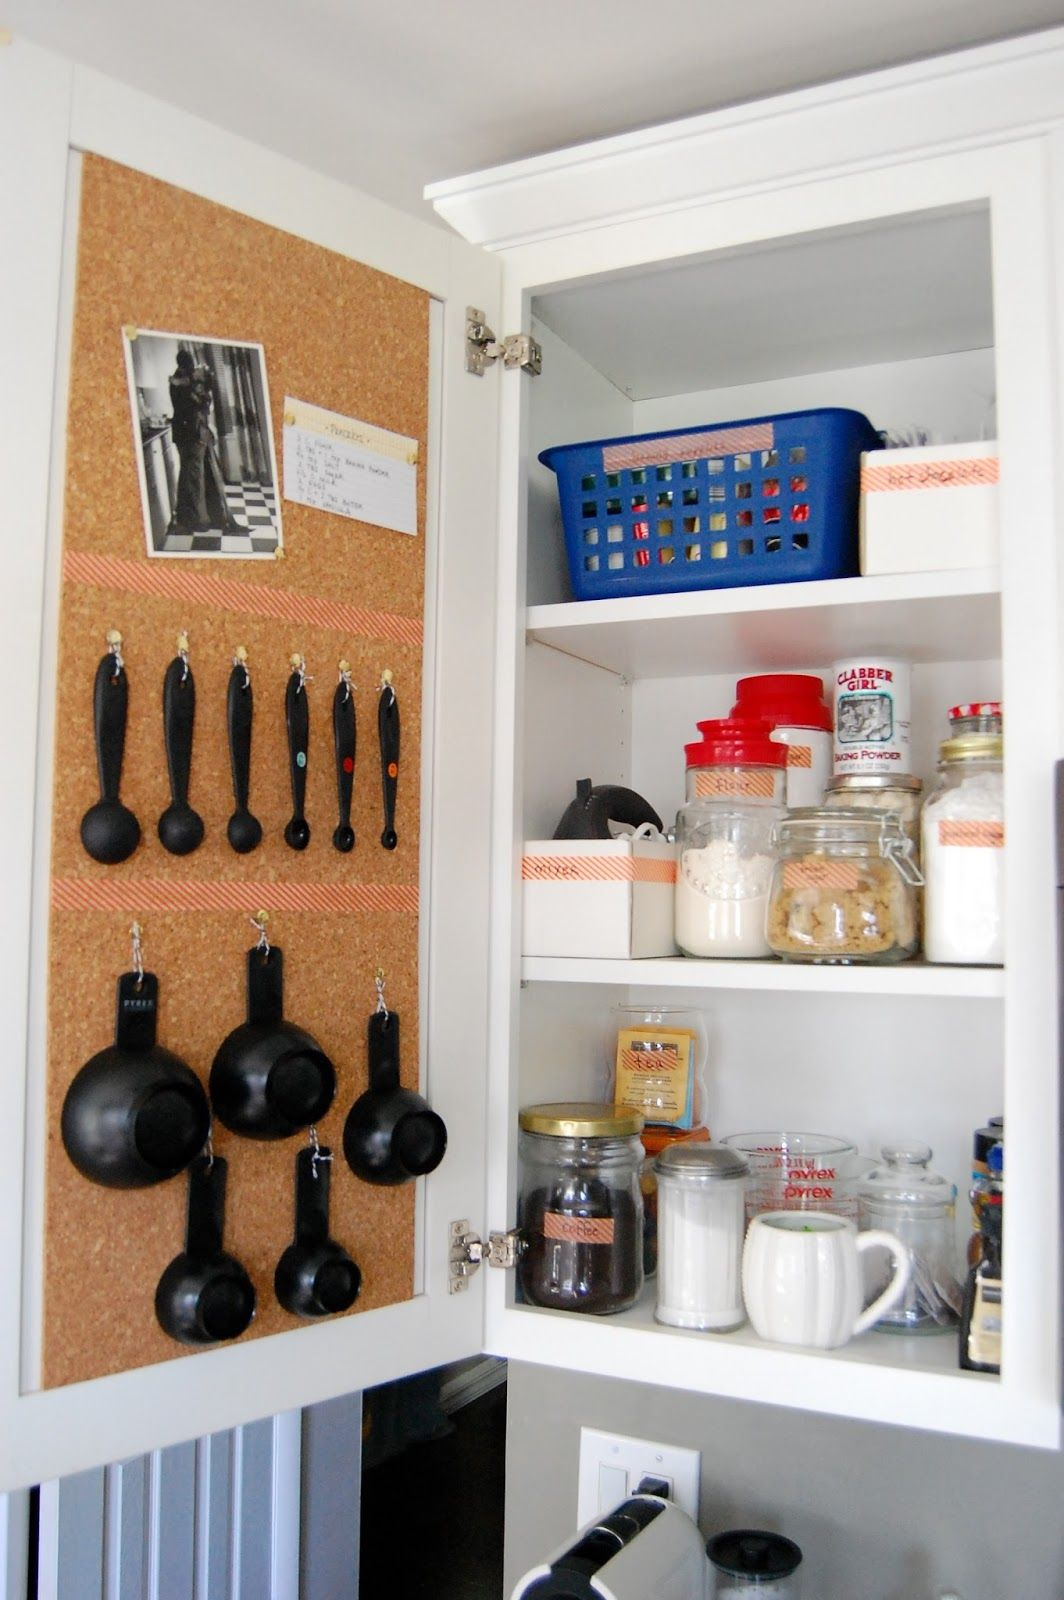 Cabinet Door Shelves Awesome Kitchen Cabinets organizers that Keep the Room Clean and Tidy